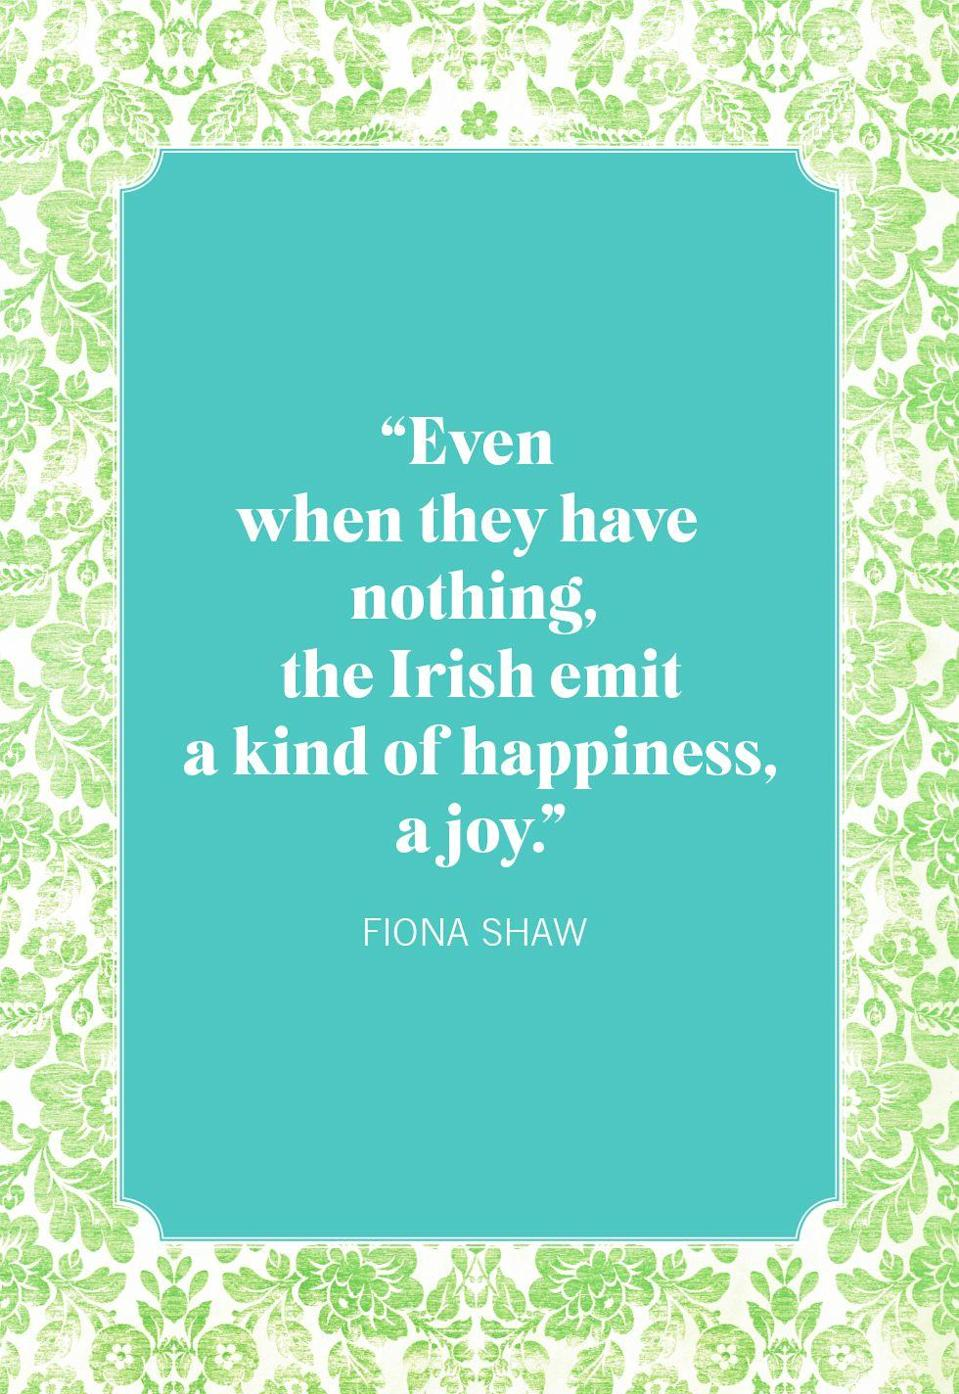 "<p>""Even when they have nothing, the Irish emit a kind of happiness, a joy.""</p>"